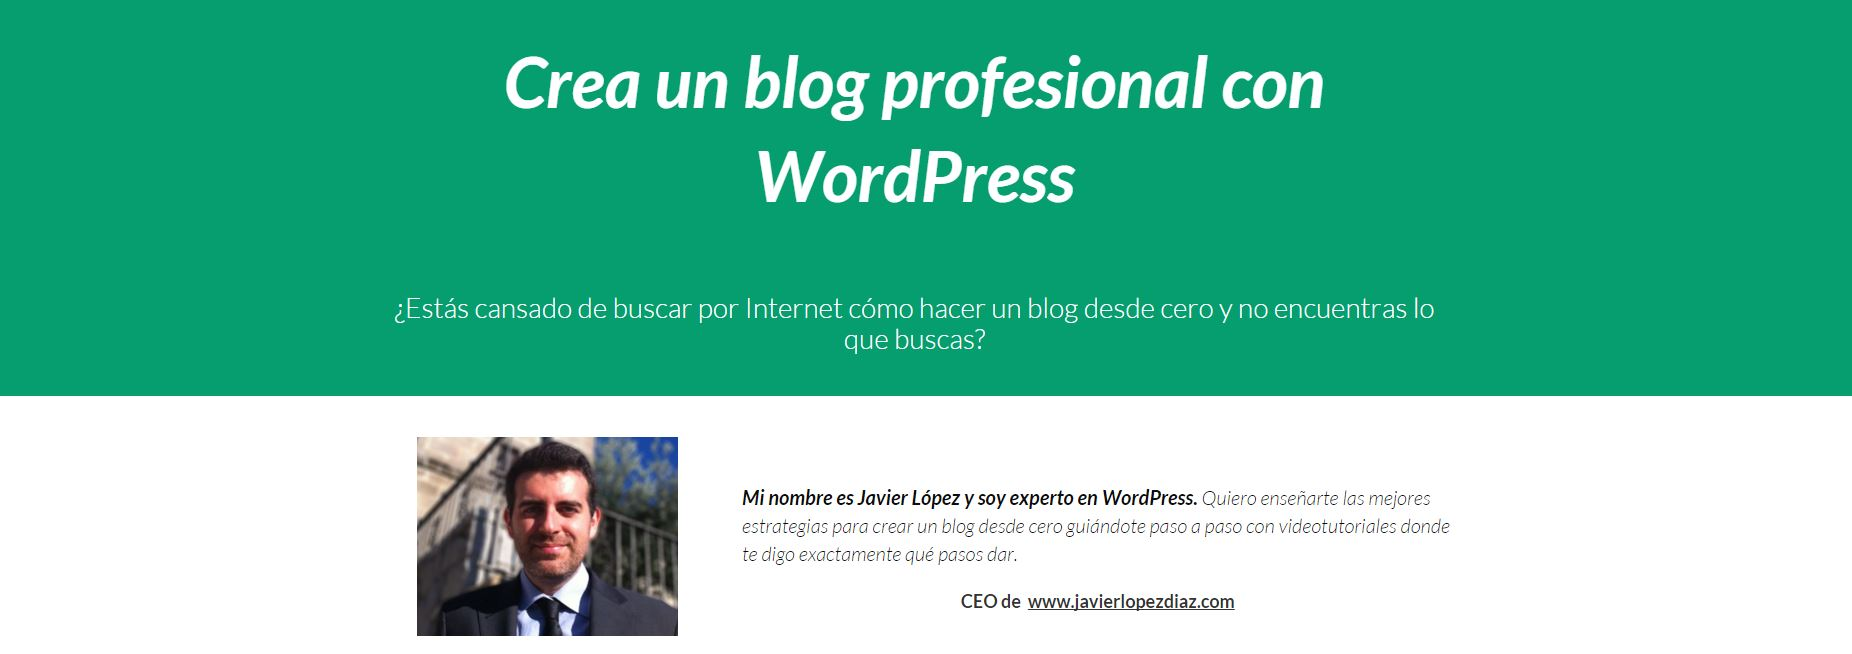 landing del curso de wordpress